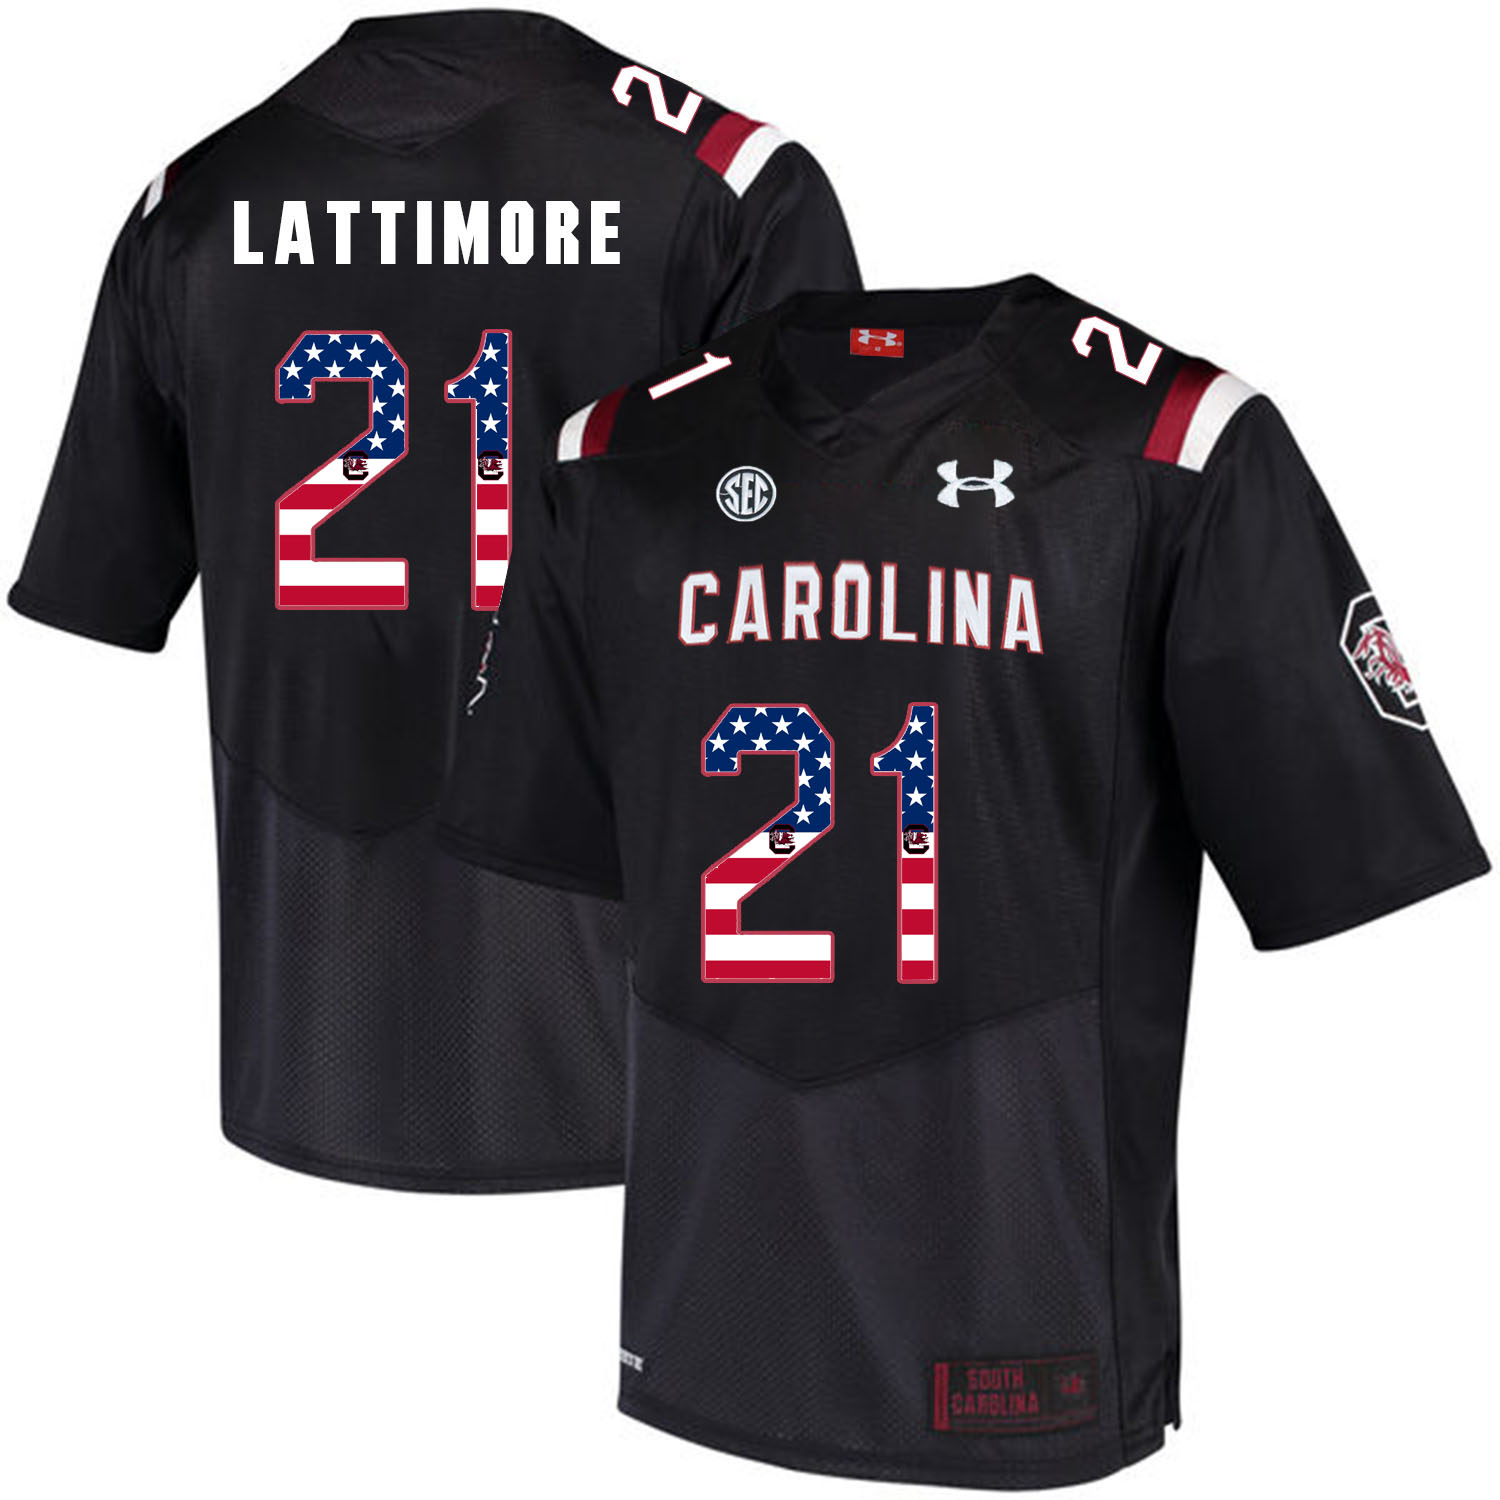 South Carolina Gamecocks 21 Marcus Lattimore Black USA Flag College Football Jersey